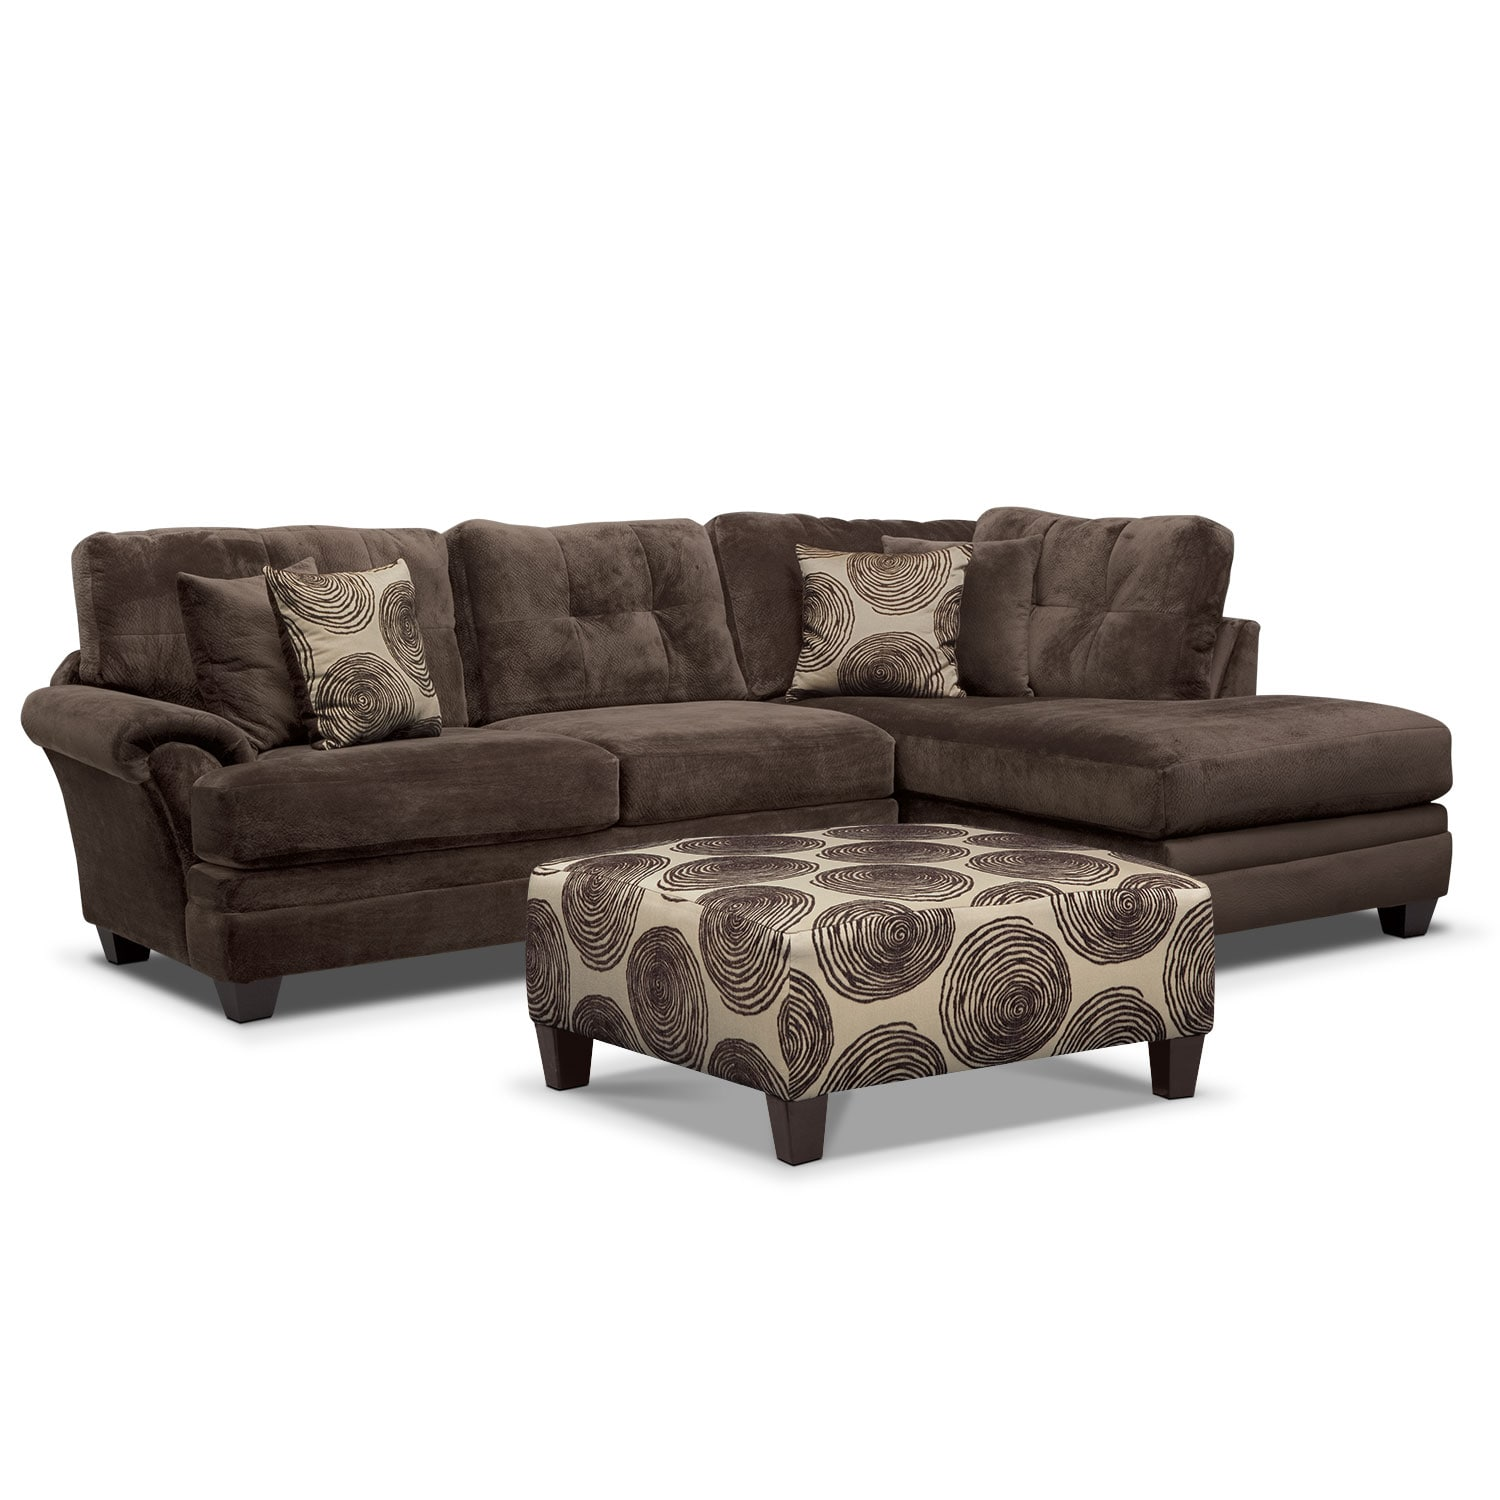 Living Room Furniture - Cordelle 2-Piece Right-Facing Chaise Sectional and Cocktail Ottoman Set - Chocolate